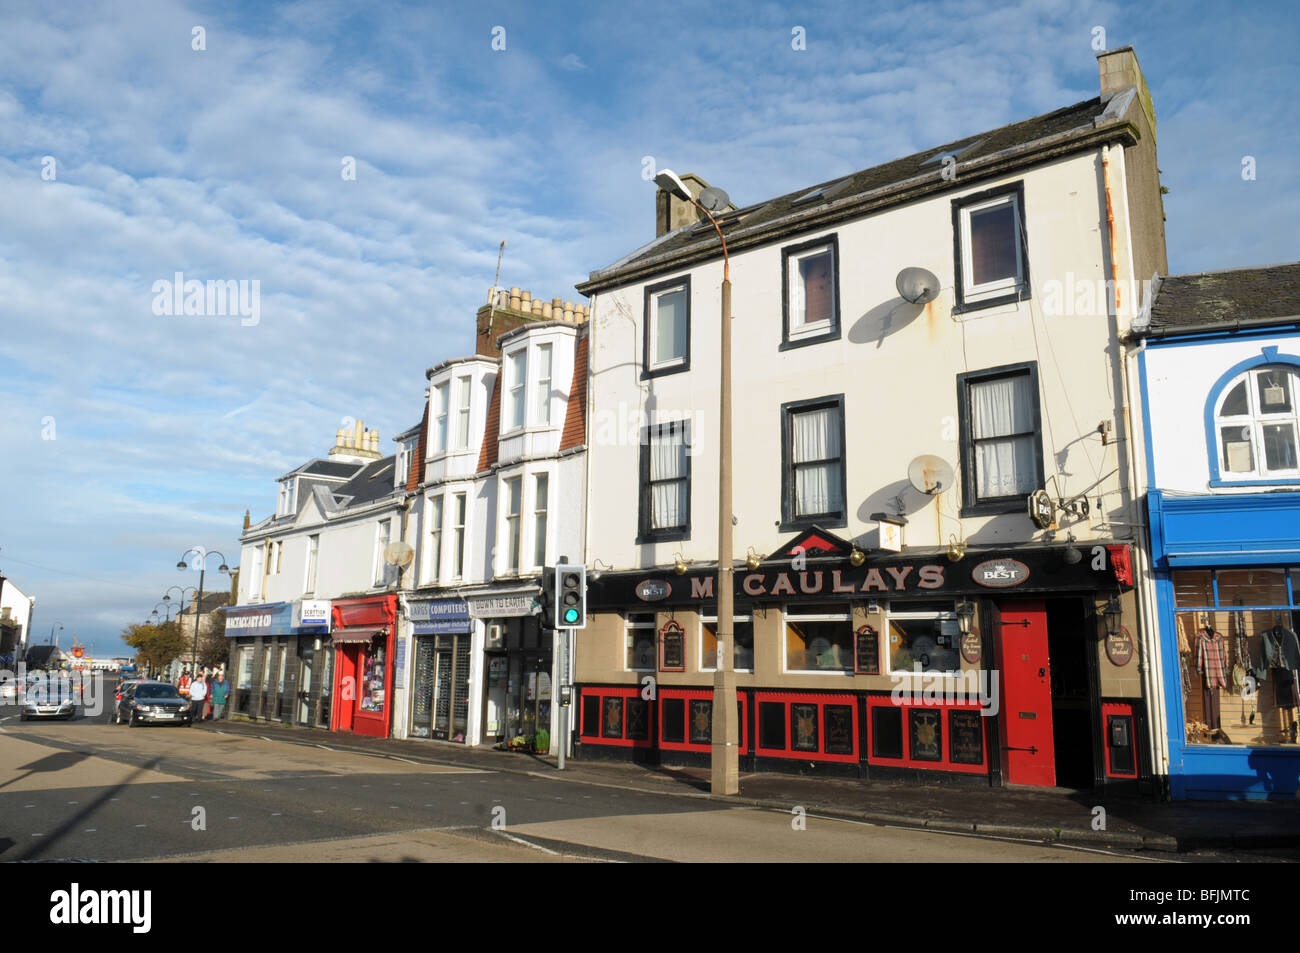 A pub and shops in the seaside town of Largs in Scotland. - Stock Image